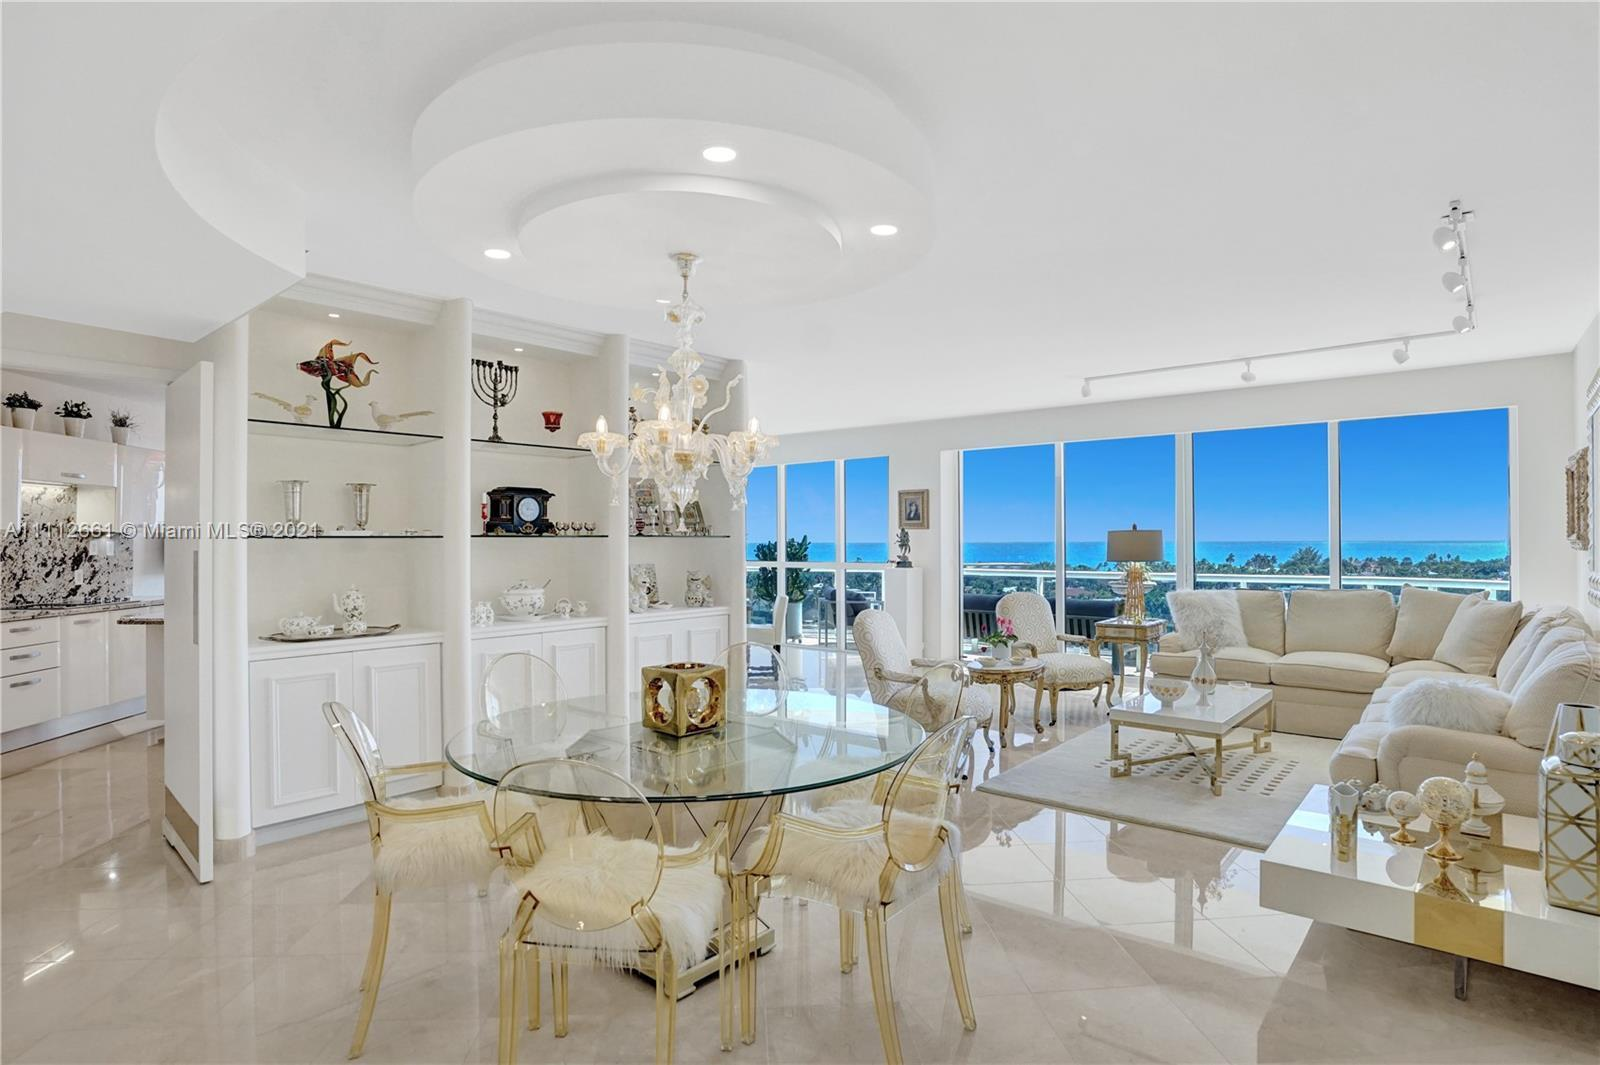 Enter this luxurious residence, a real gem, through your private elevator and immediately enjoy brea